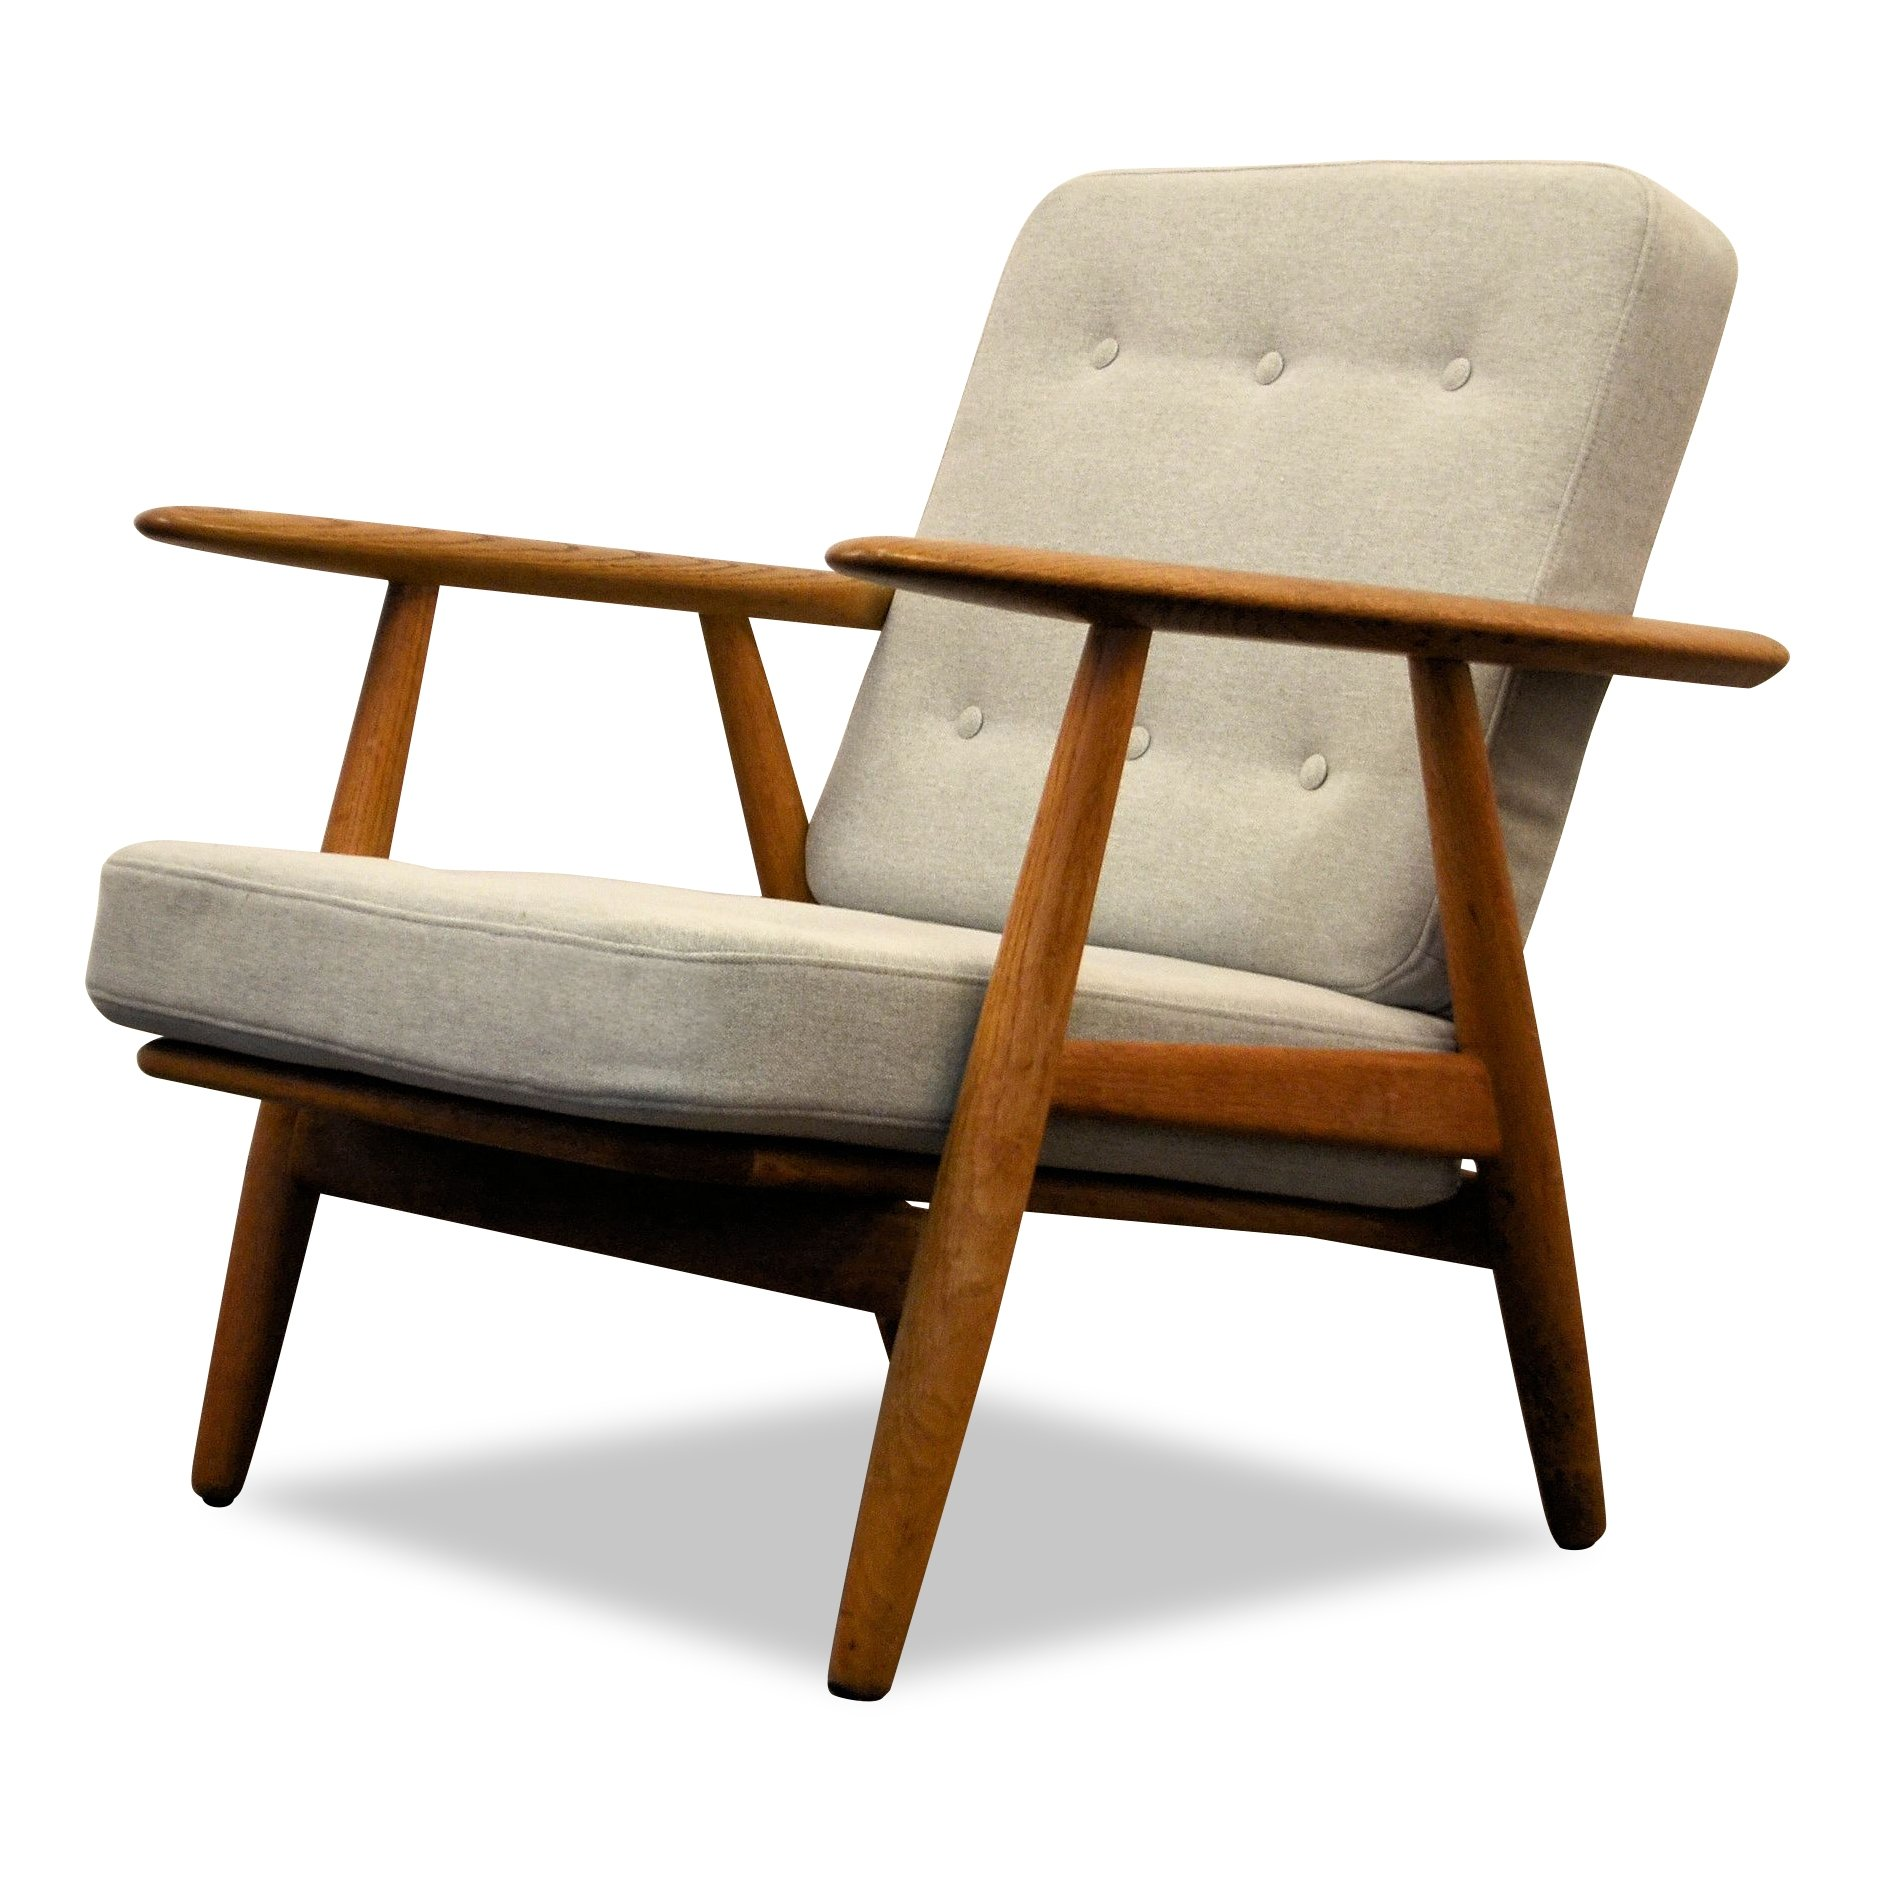 danish design hans j wegner 39 cigar 39 ge 240 oak lounge chair 71450. Black Bedroom Furniture Sets. Home Design Ideas